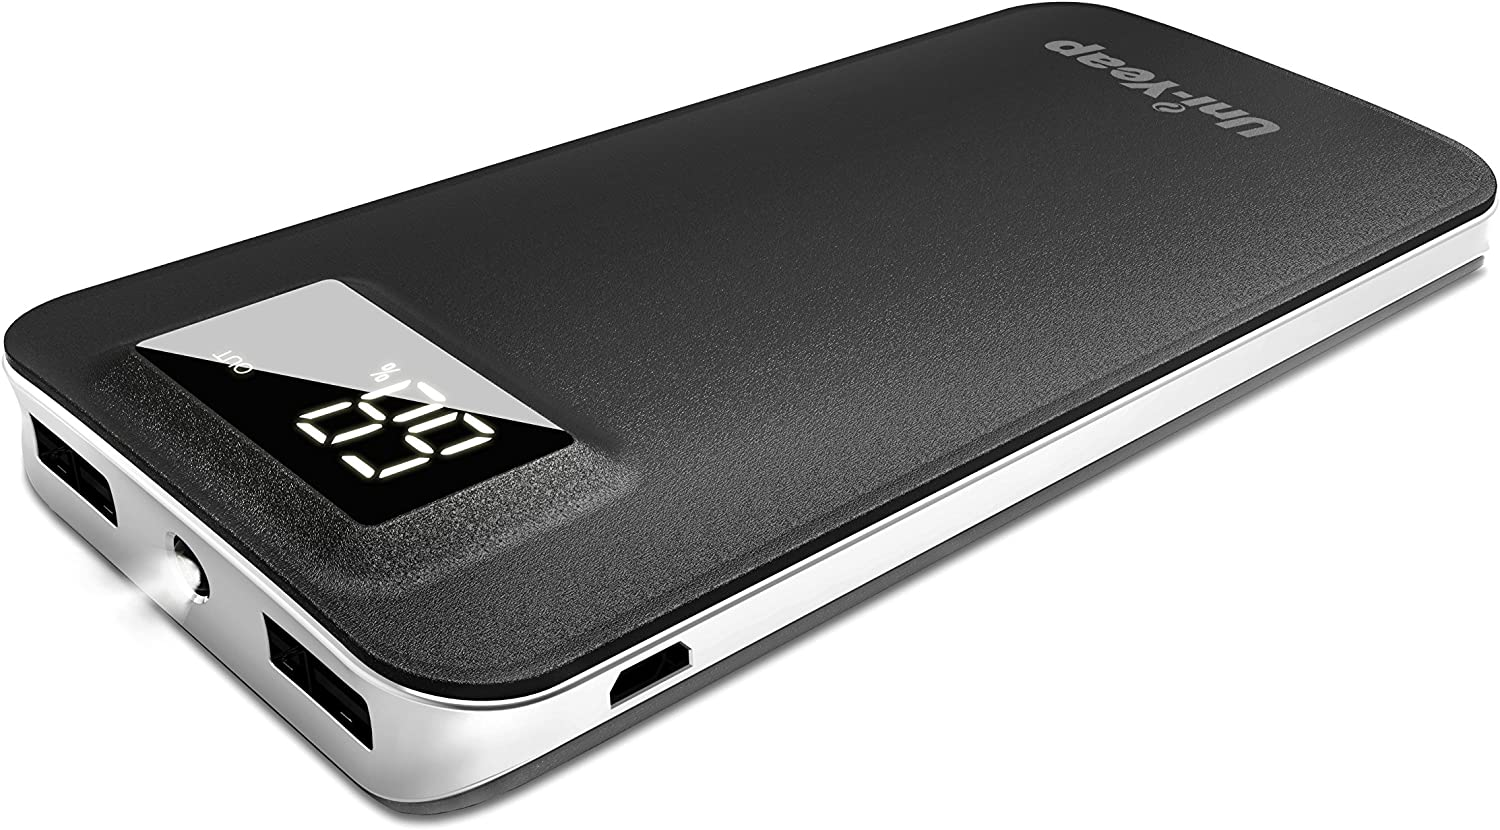 Uni-Yeap 11000mAh External Battery Charger Power Bank with Safety Charging Conversion System and Ultra Slim with Screen for iPhoneXs Xr X 8 7 6s 6, iPad, Samsung Galaxy and All Smart Phone(Black)